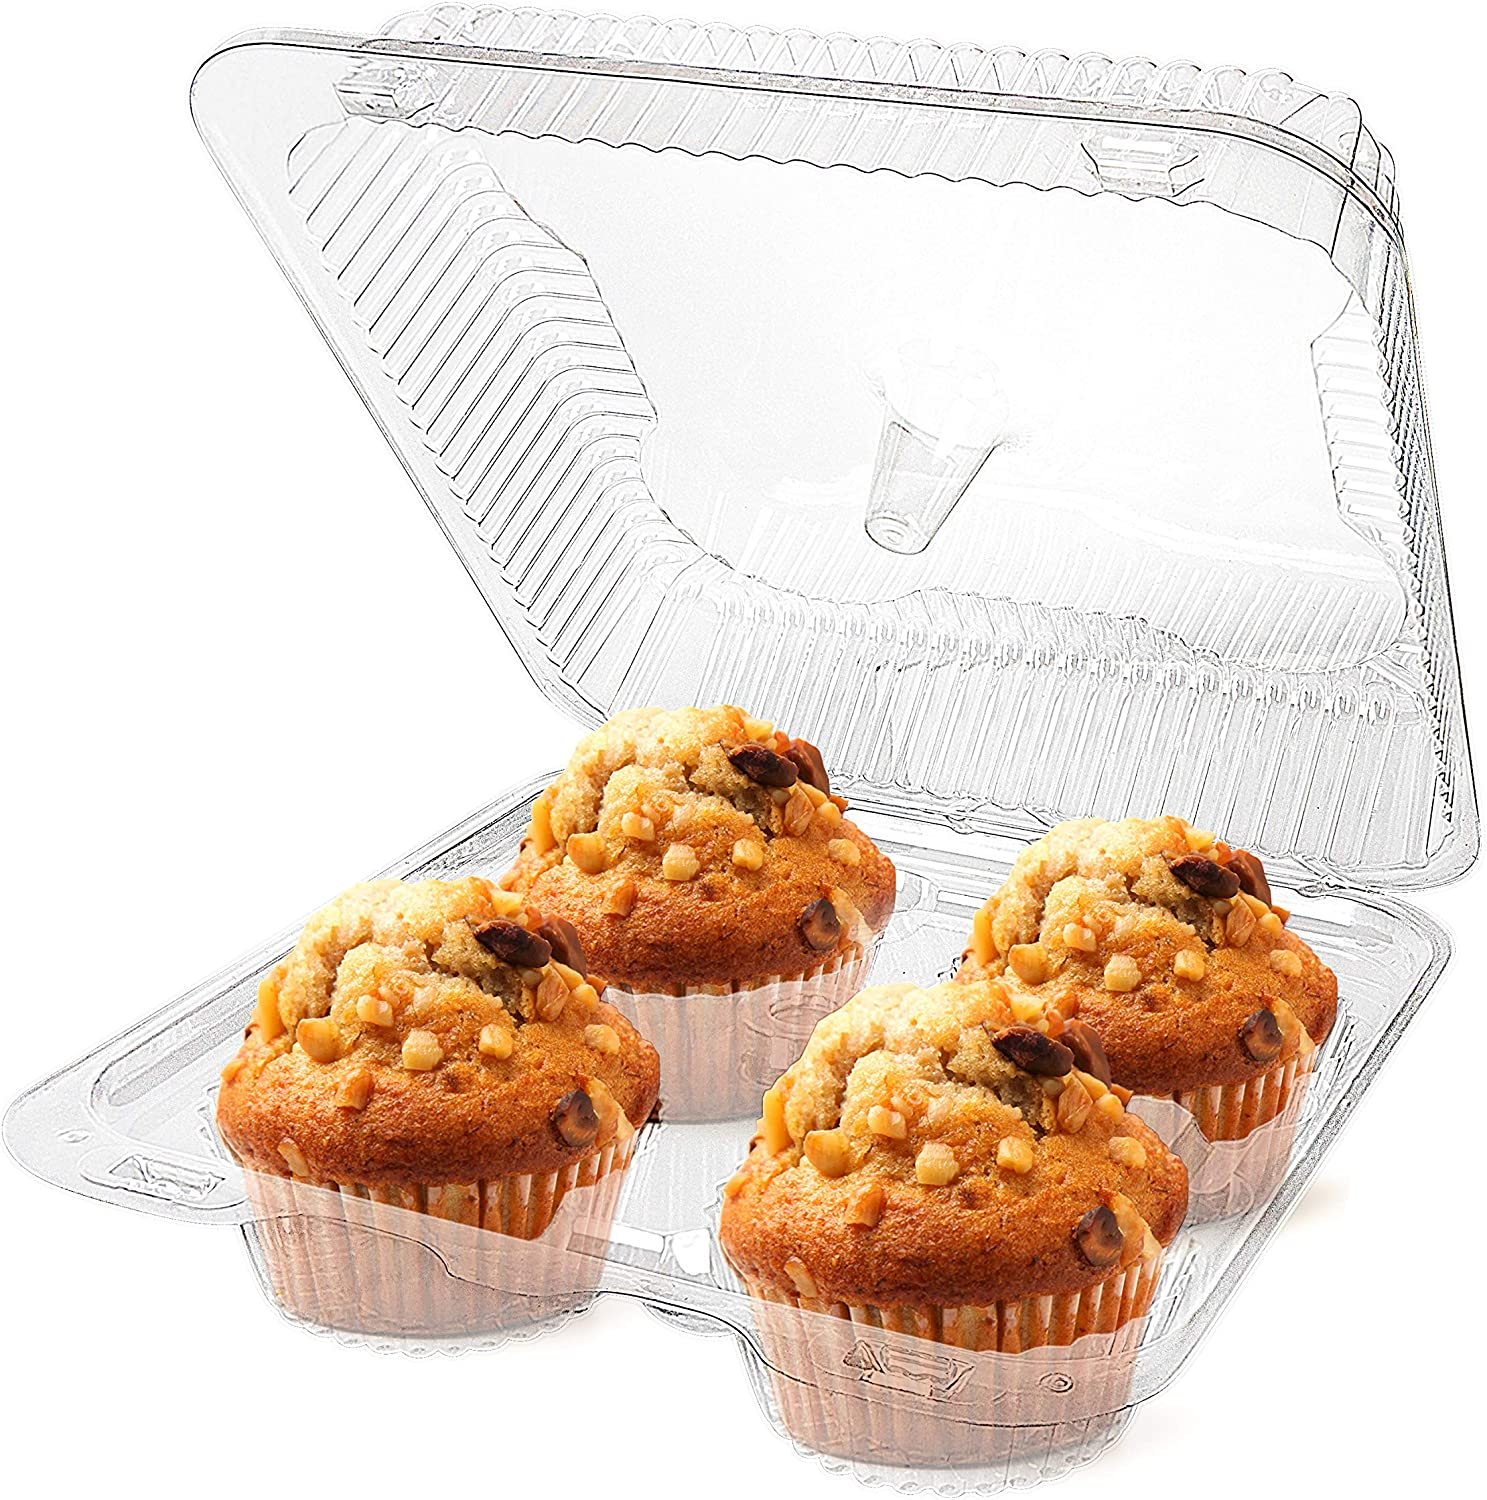 Stock Your Home 4-Compartment Disposable Containers (20 Count) - Plastic Cupcake Containers - Disposable Trays for Cupcakes & Muffins - Hinged Lock Cupcake Clamshell - Deep Cups for Cupcake Storage